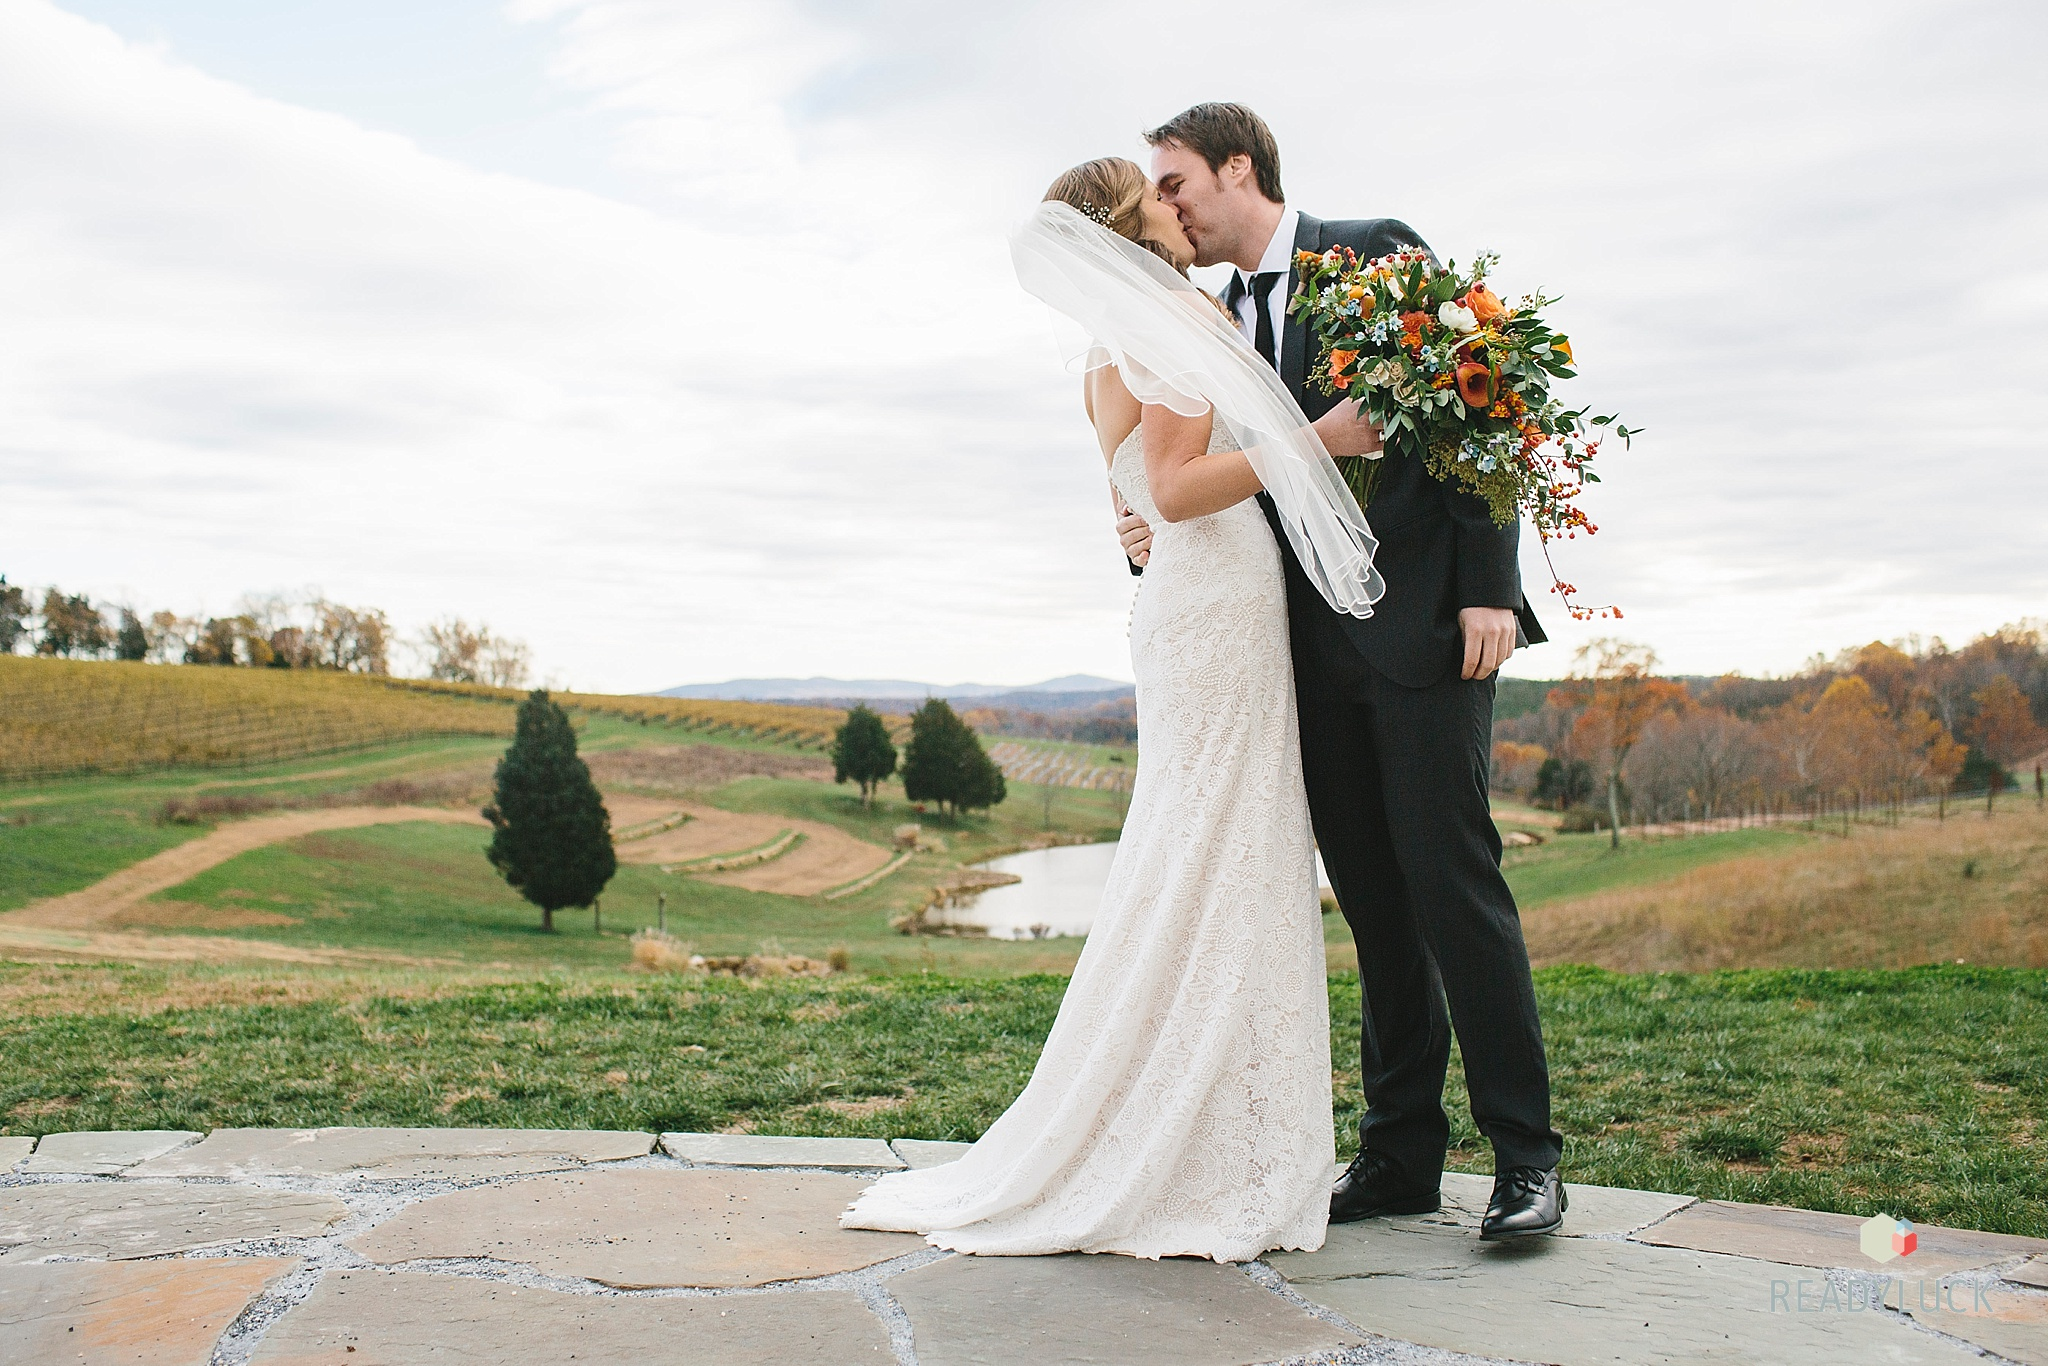 Darcy + Chris Vineyard Wedding - Magnolia Bluebird design & events